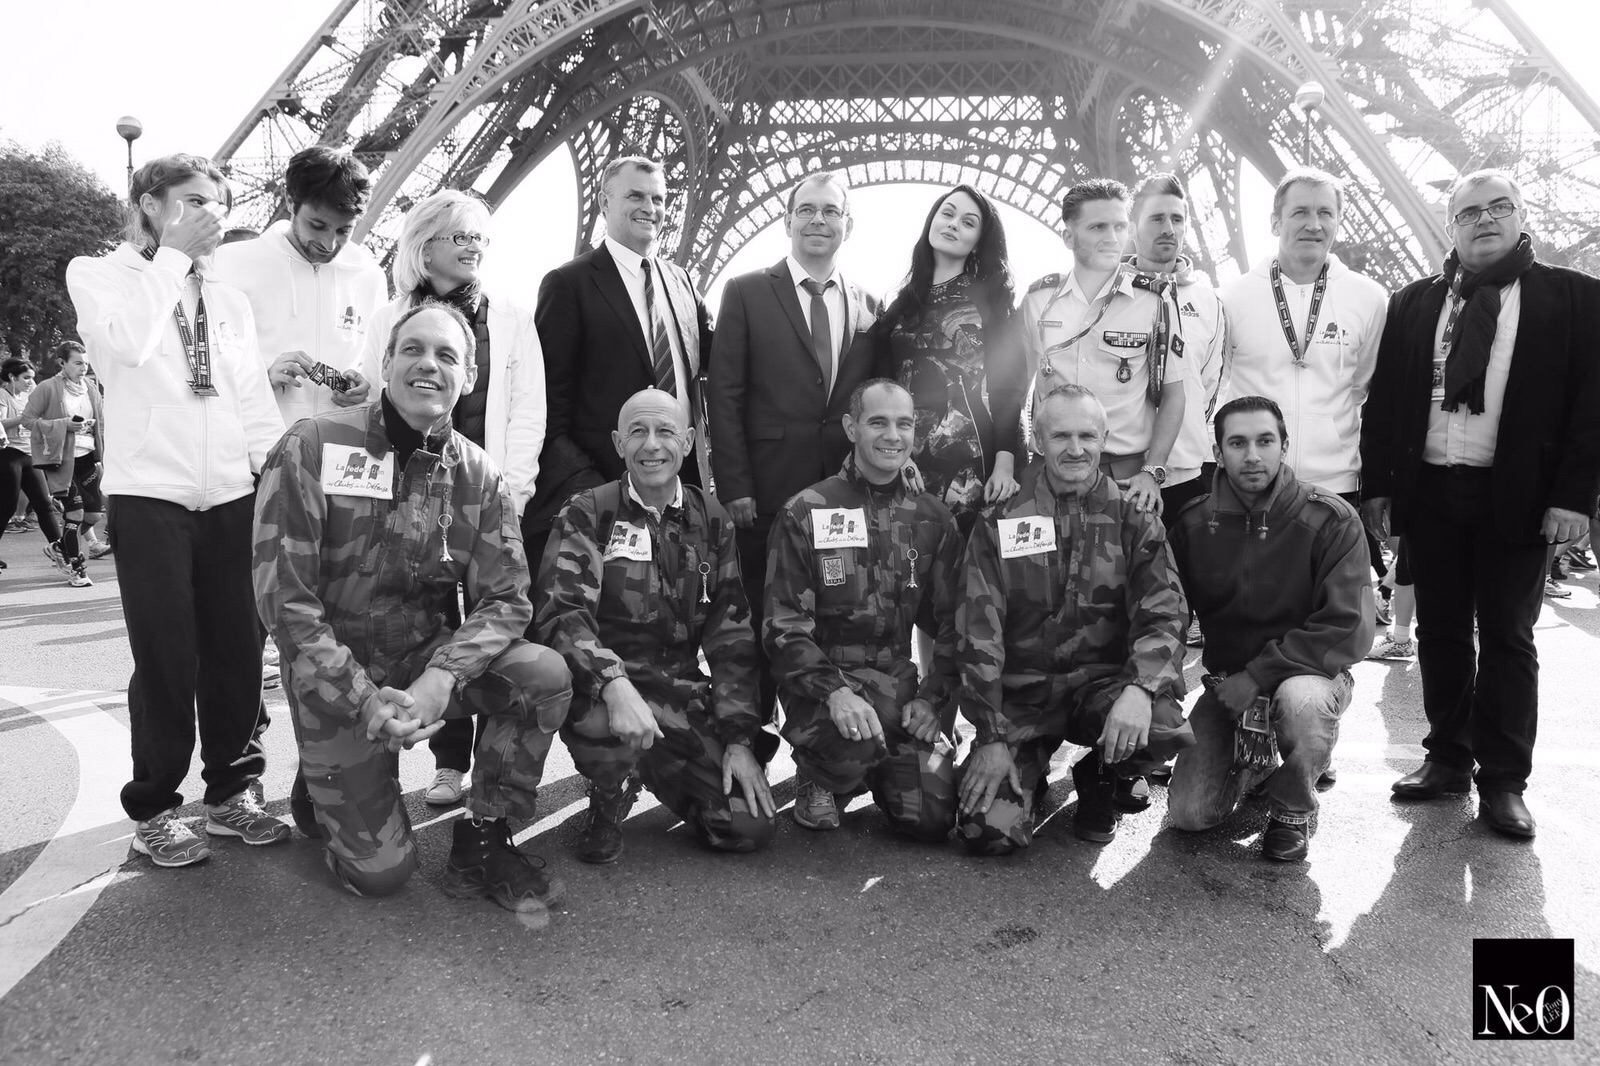 Viktoria with the French army parachutists & the army federation